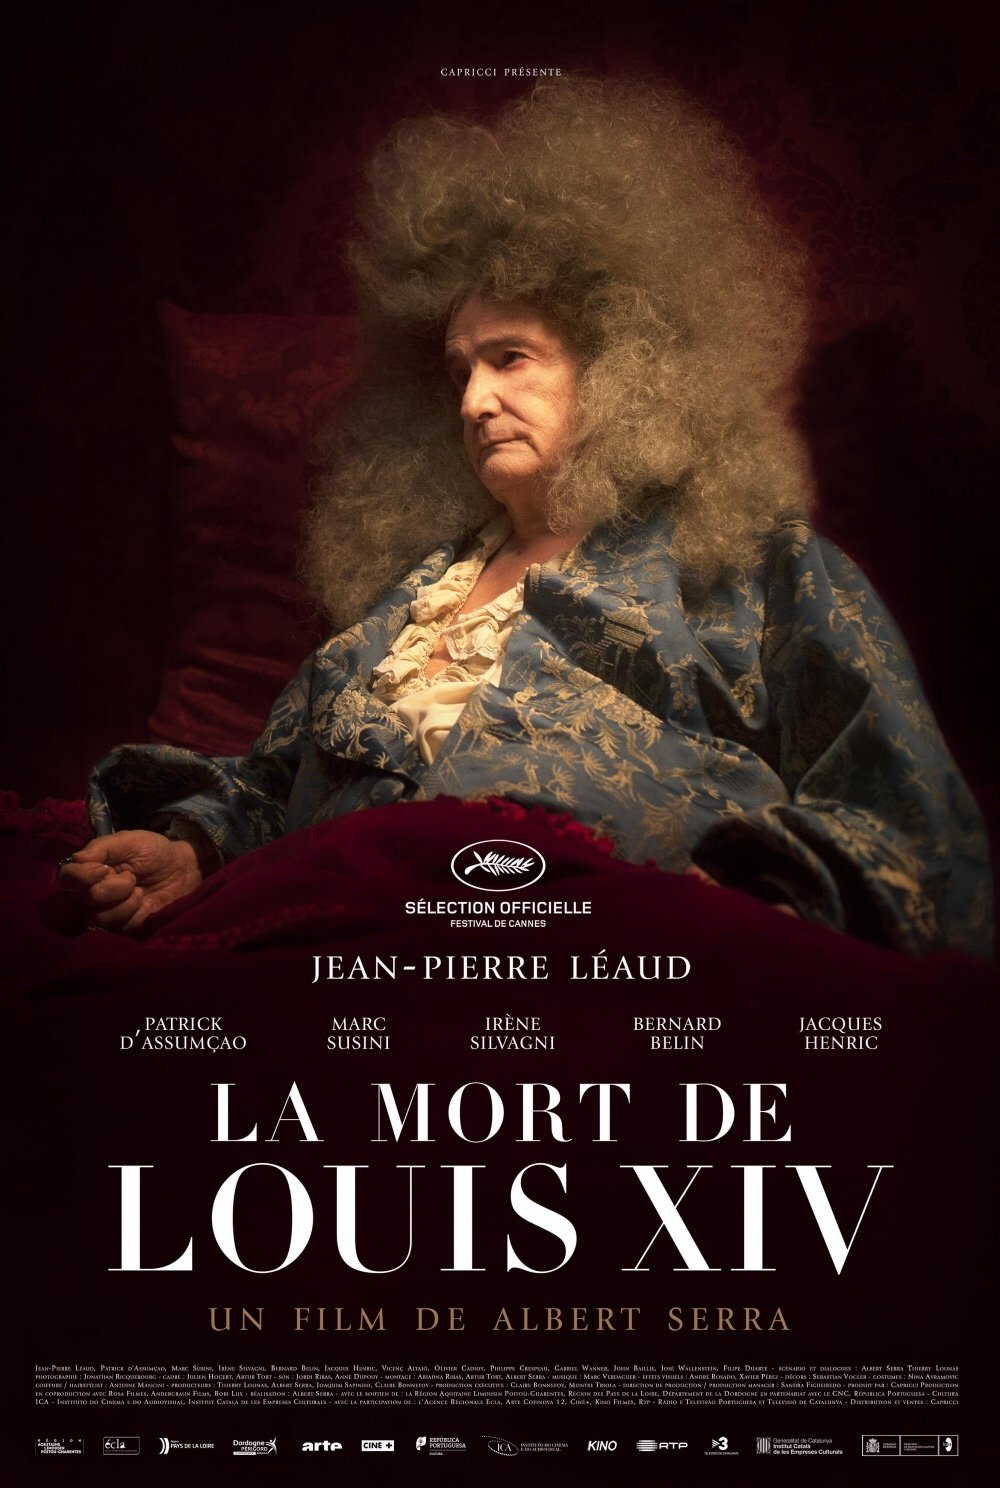 The Cannes festival poster for The Death of Louis XIV (2016)